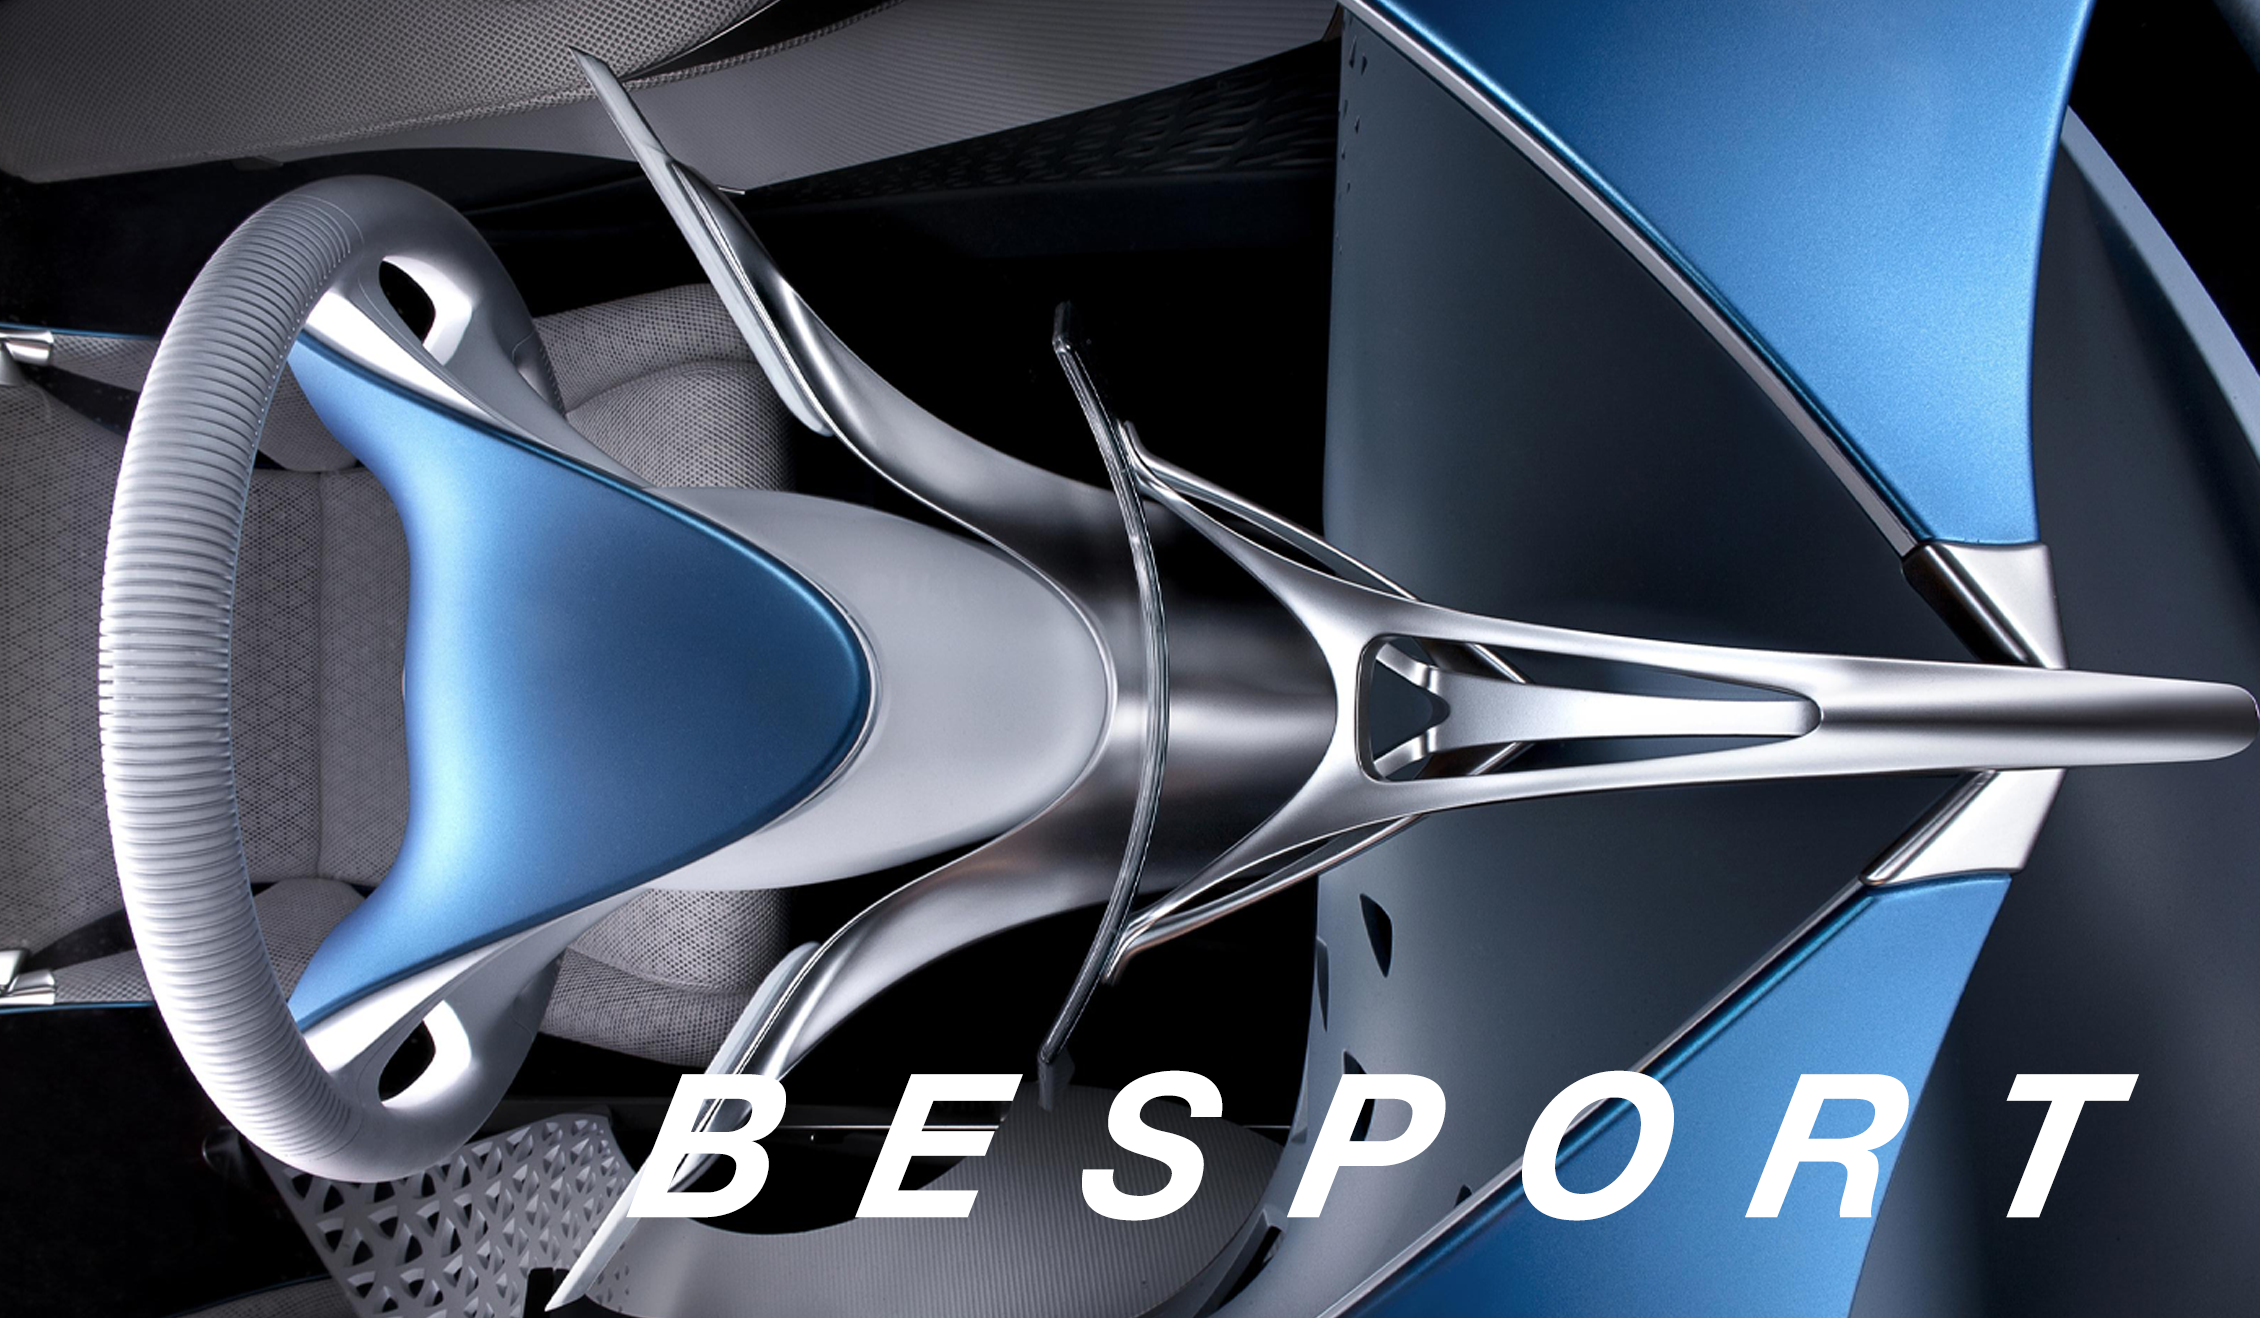 BESPORT - Inspired by bespoke sportswear geared towards the pinnacle of sports. This forecast is one of many examples of the style of thinking and curating that amplifies a subject, inspires design and leads to actionables.